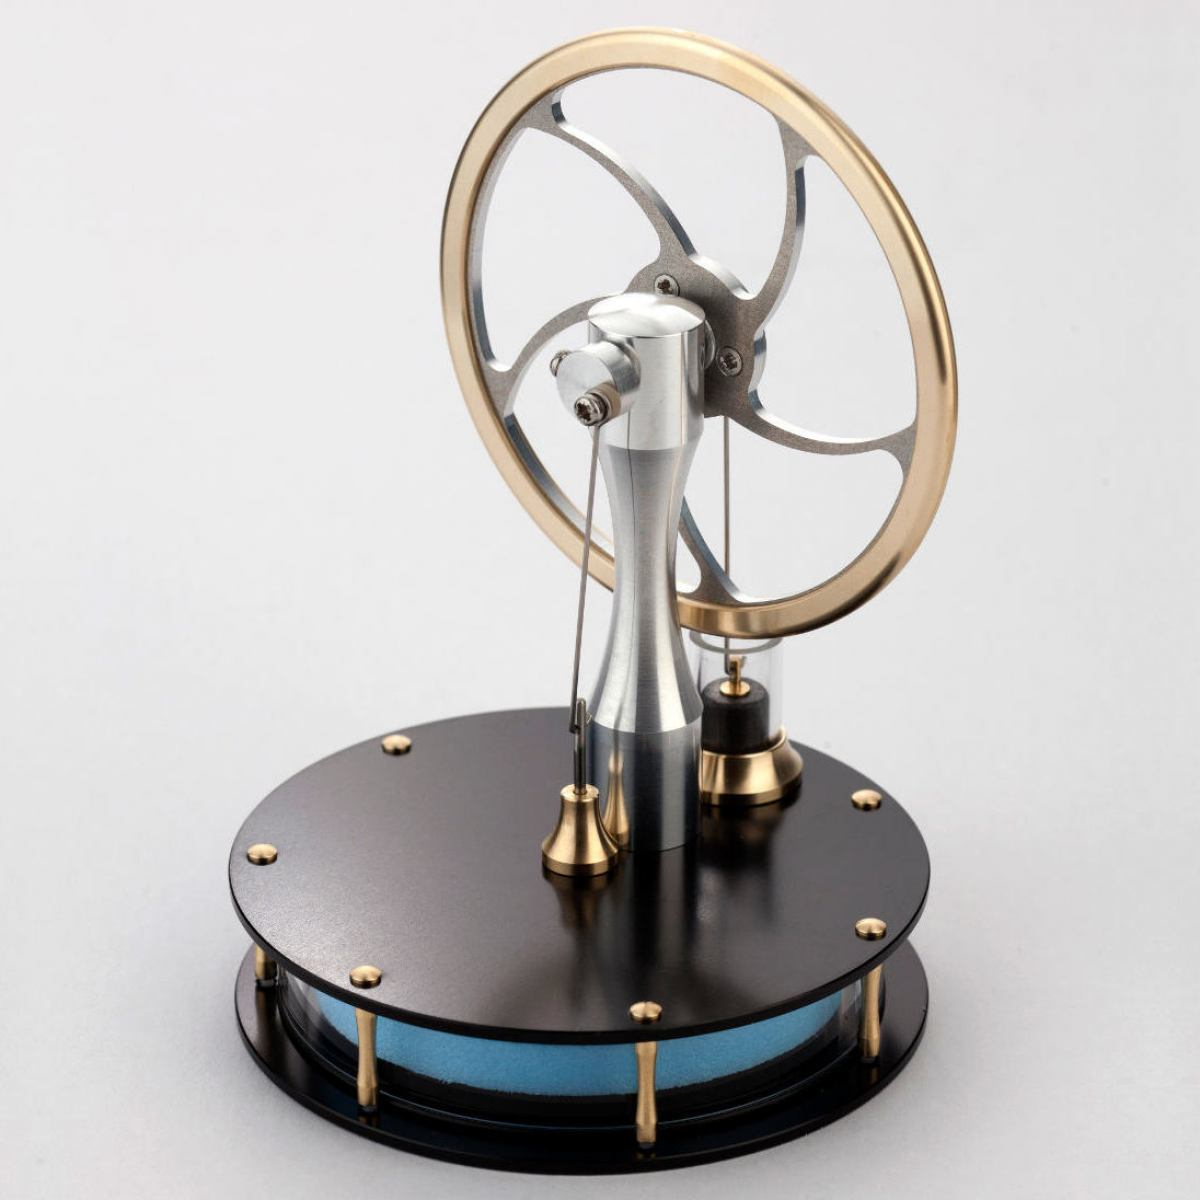 Stirling engine driven by hand warmth, sunlight, coffee etc